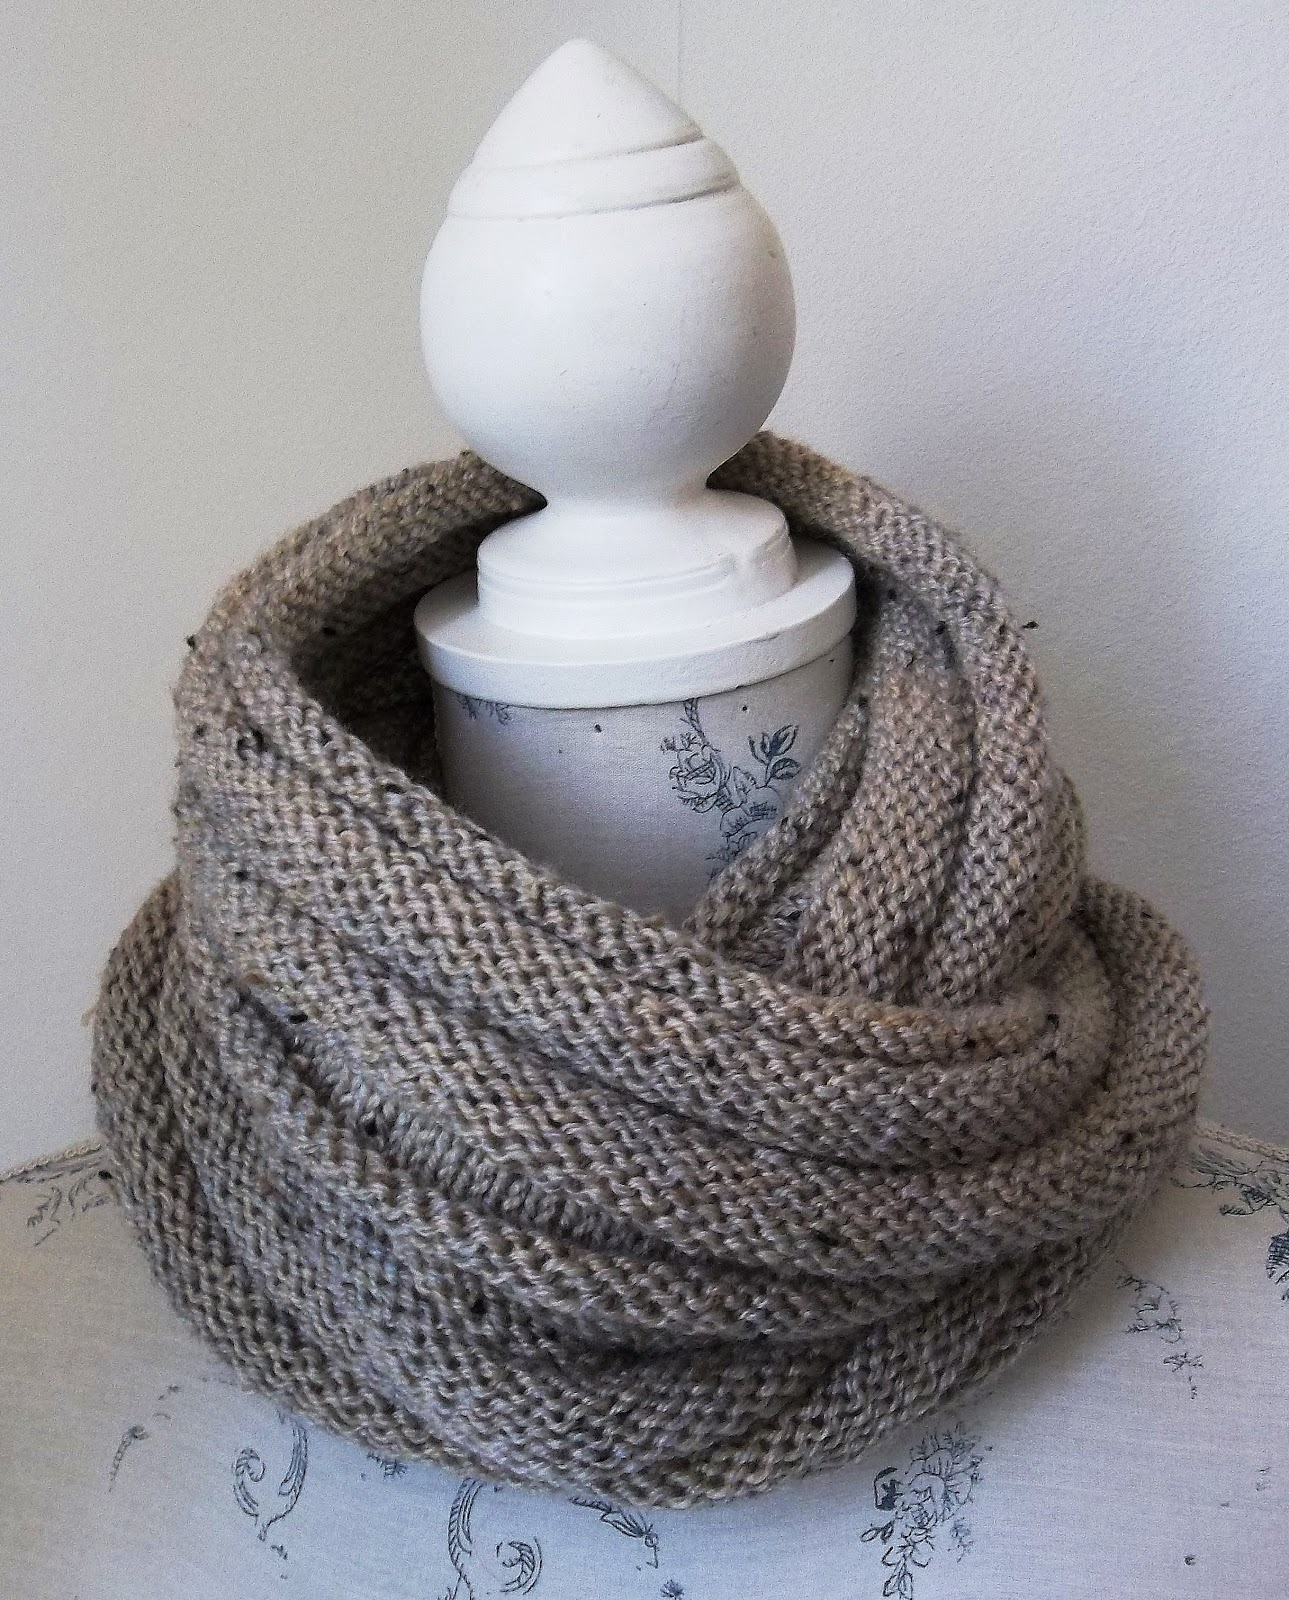 HAND KNITTING PATTERNS. ARAN. COWLS, HATS, SCARVES AND NECK WARMERS